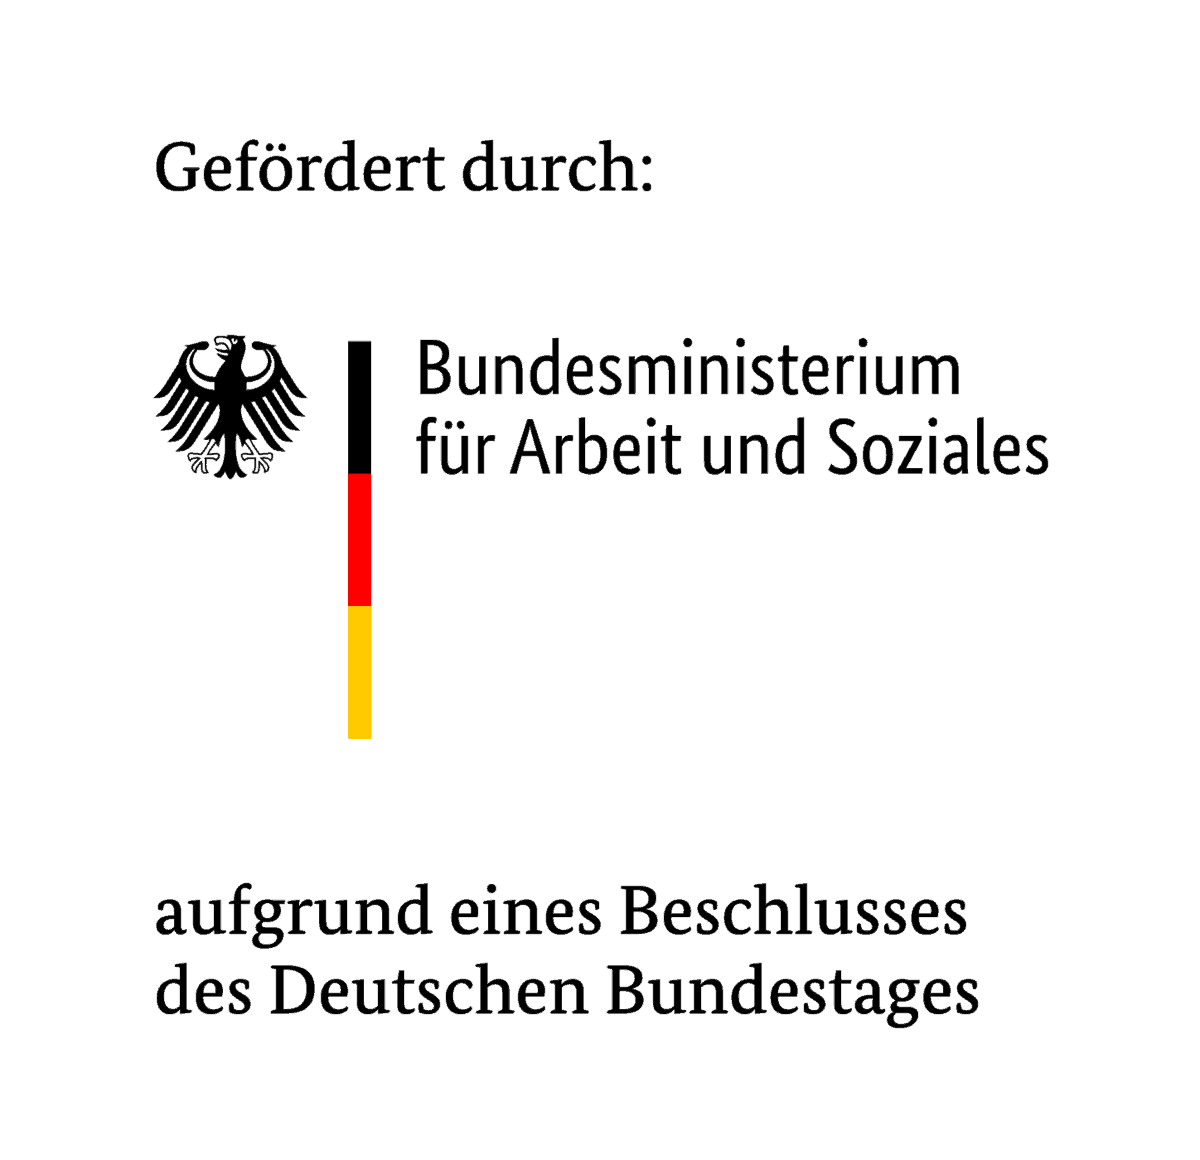 Logo - Sponsored by: Federal Ministry of Labor and Social Affairs :: The logo with federal eagle and the colors black-red-gold is extended by the text: Funded by Federal Ministry of Labor and Social Affairs based on a resolution of the German Bundestag.